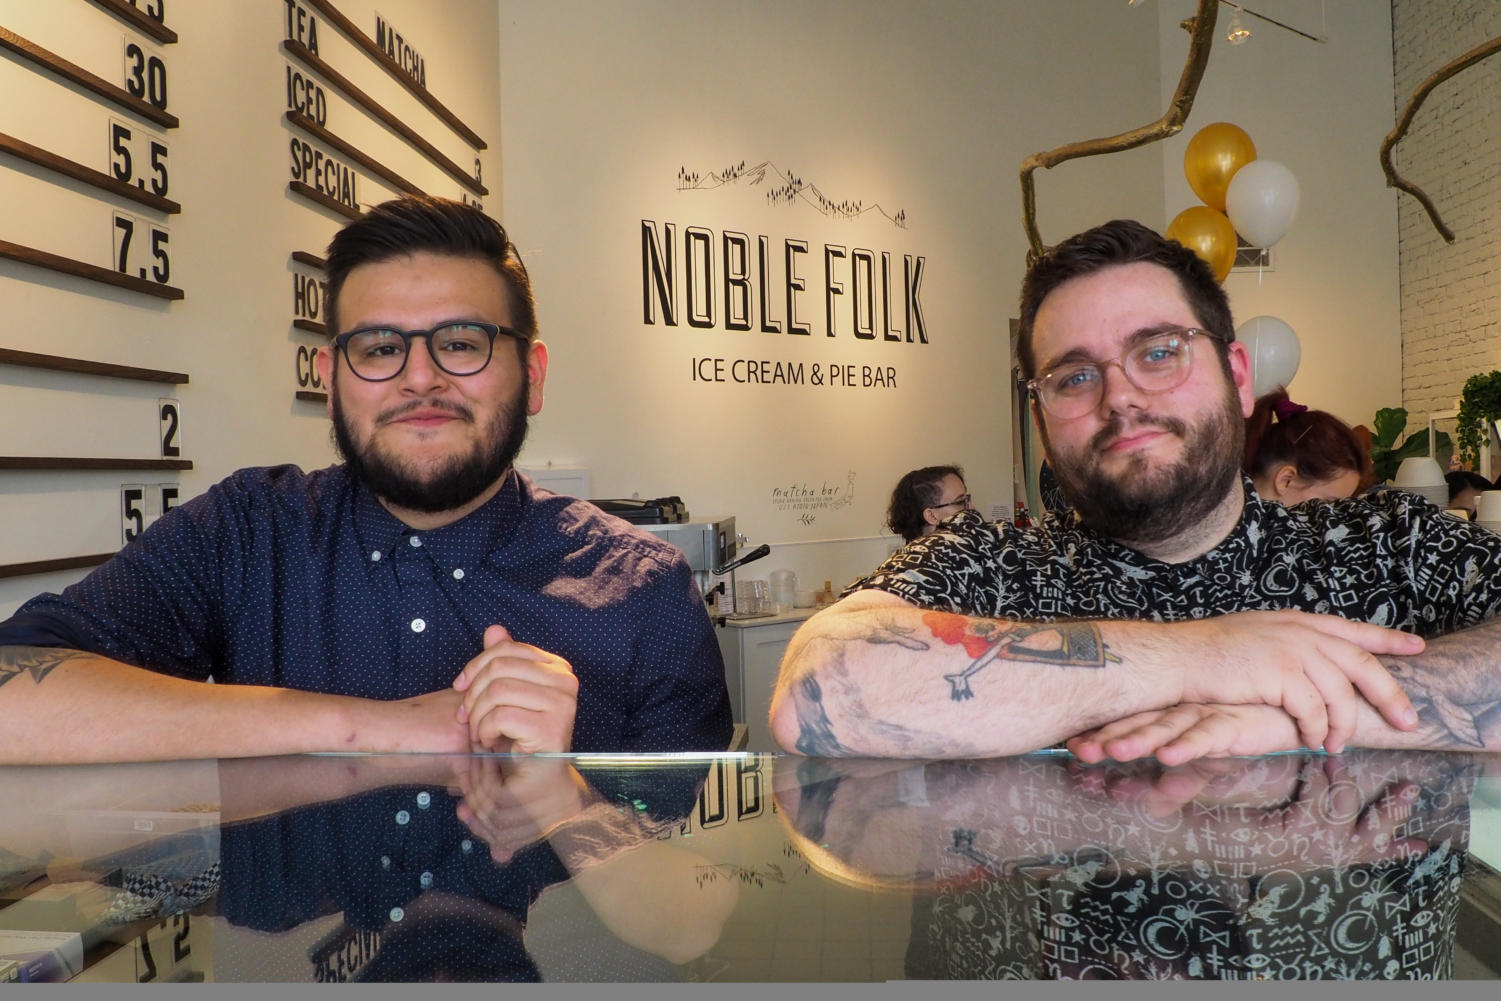 Ozzy Jimenez (left) and Christian Sullberg (right), co-owners of Moustache Baked Goods, Pastry Annex and two Noble Folk locations, opened the newest Noble Folk in downtown area Santa Rosa.